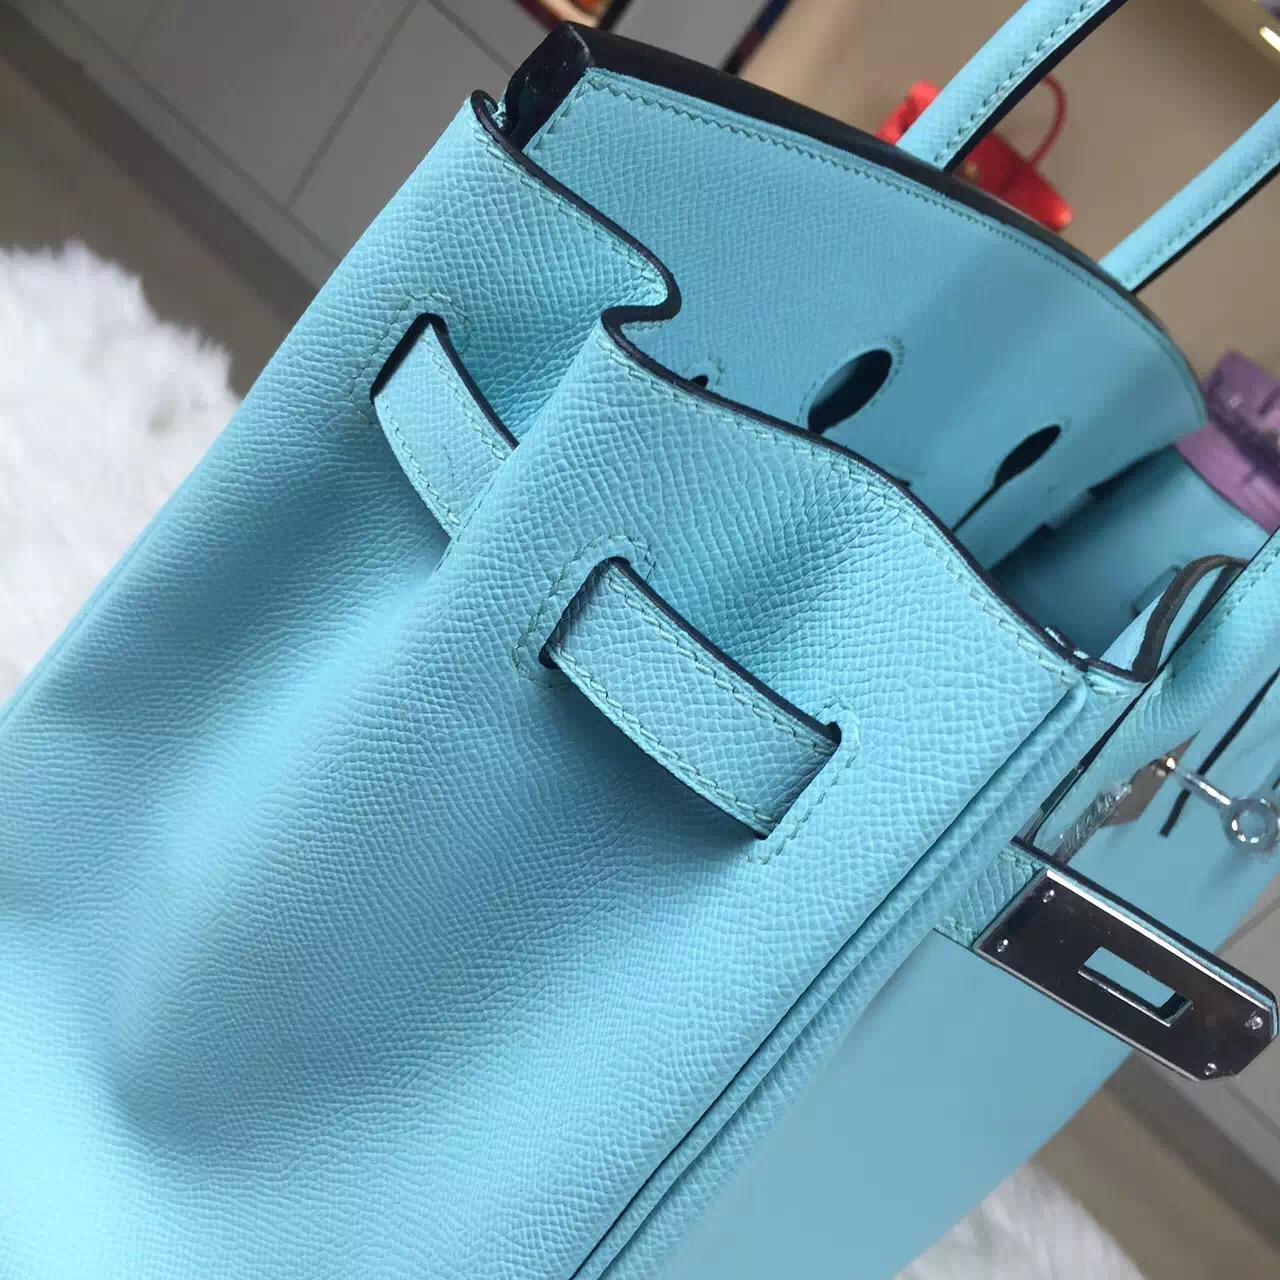 Discount Hermes Epsom Leather Birkin Bag 35CM in 3P Lagon Blue Ladies' Tote Bag